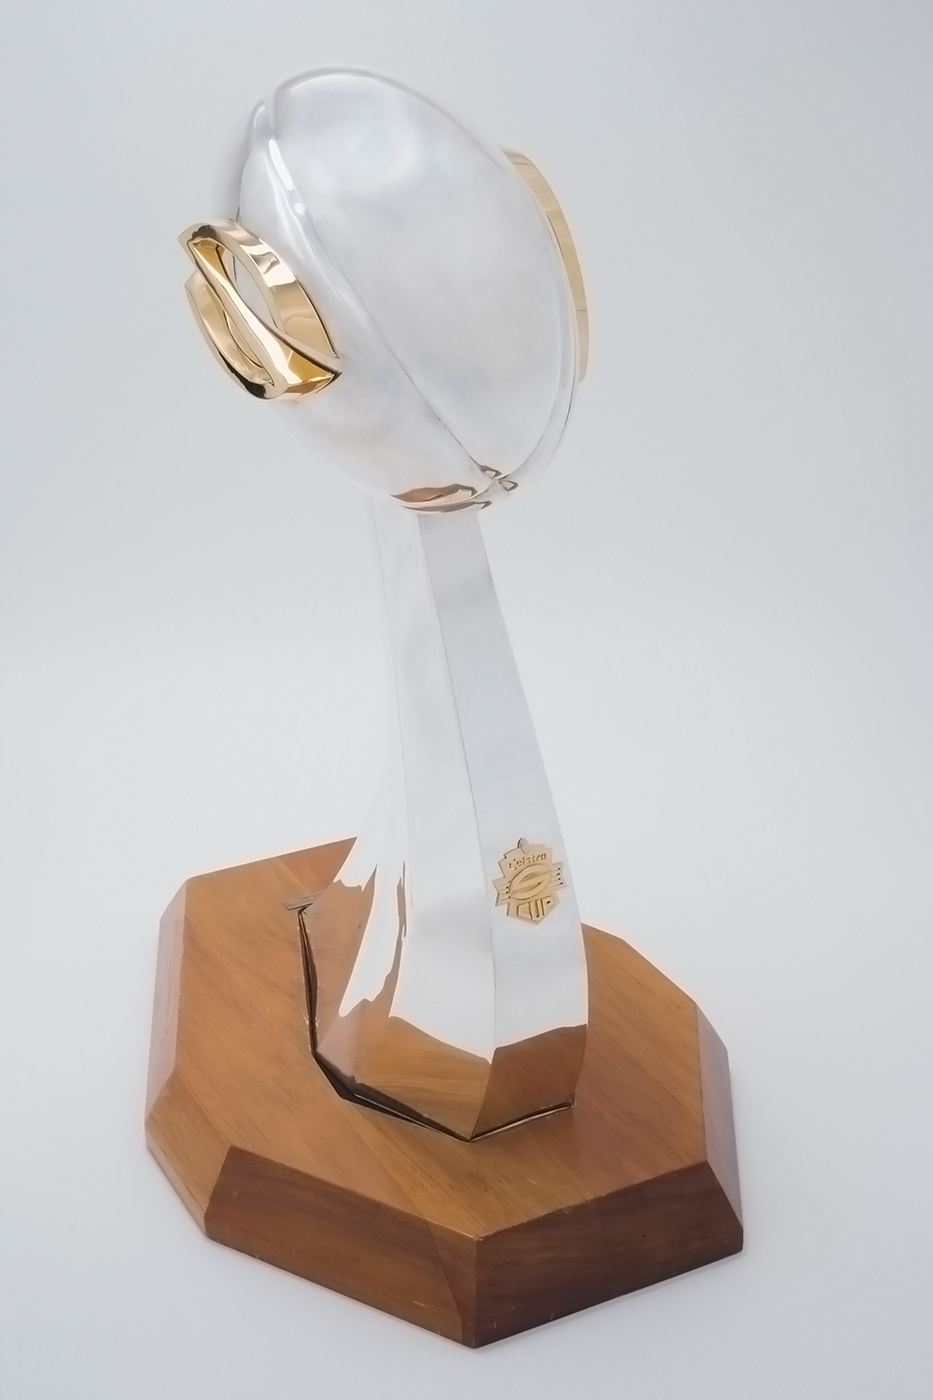 Trophy with a silver football extendeding above a wooden base. - click to view larger image